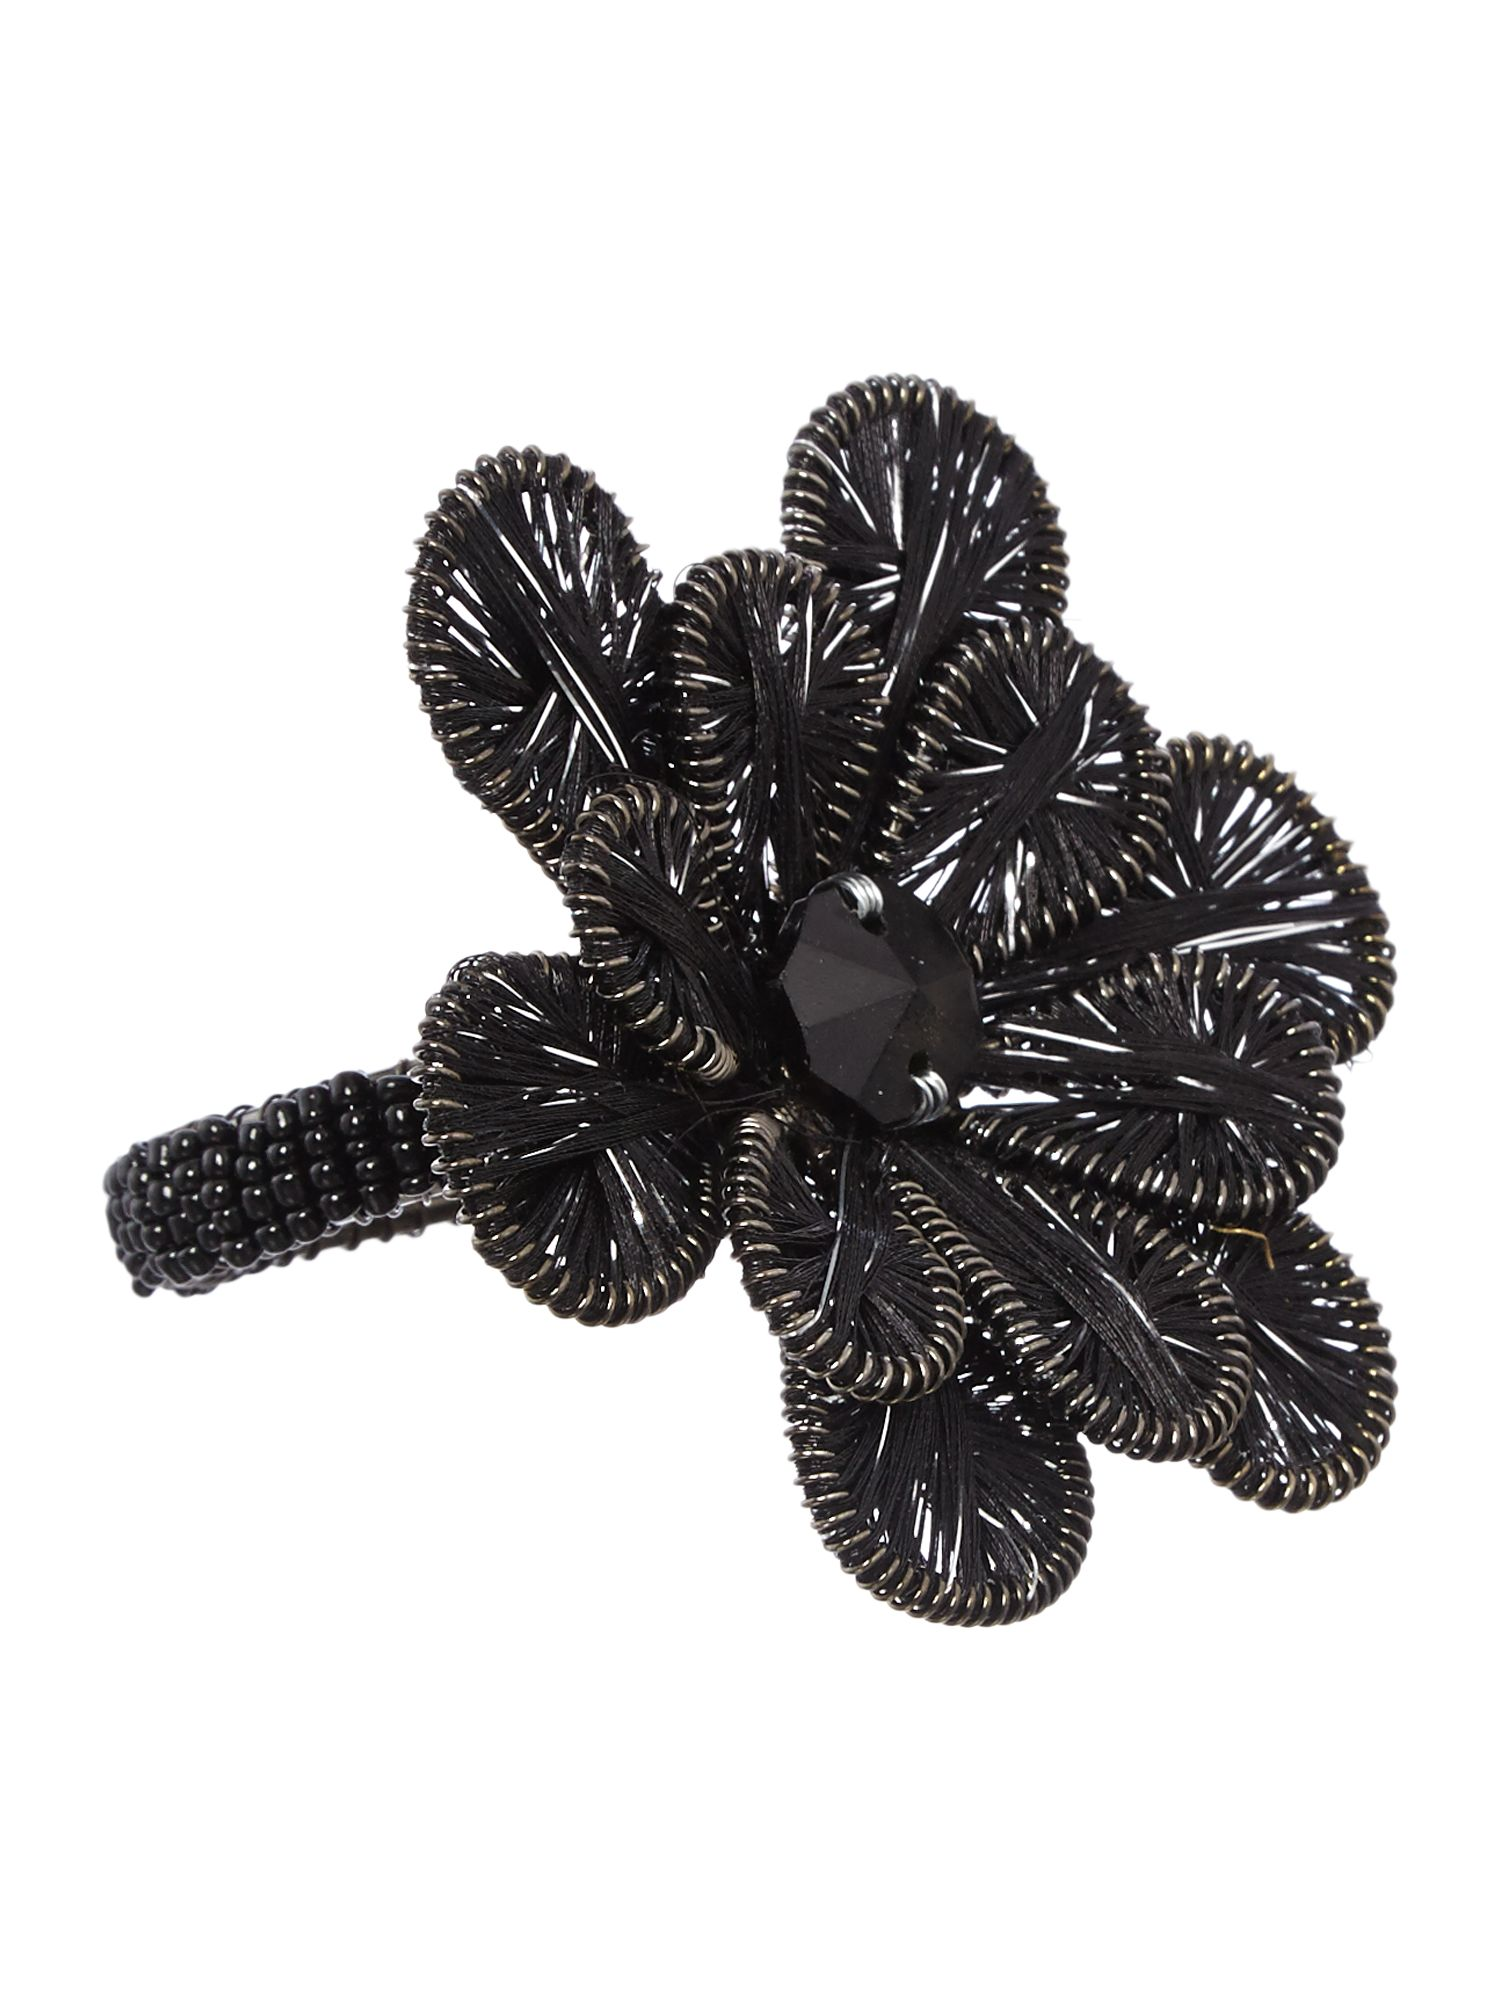 Black flower napkin ring set of 4